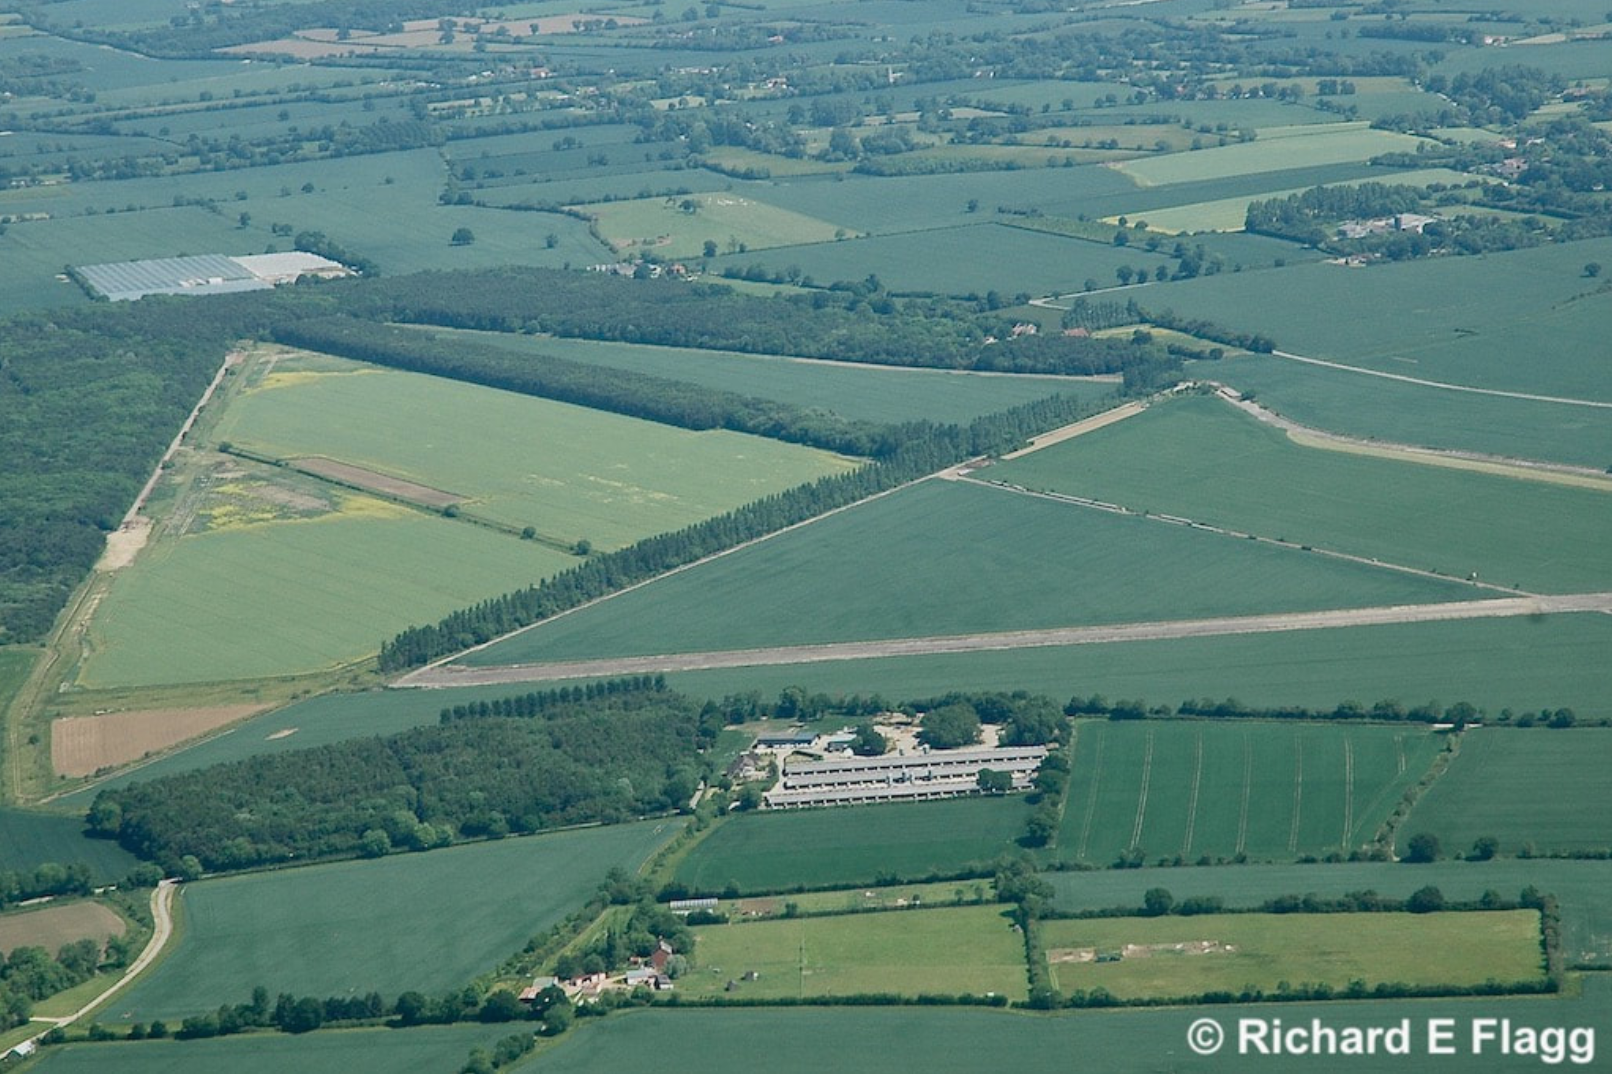 005Aerial View 2 of RAF Hardwick Airfield - 31 May 2009.png